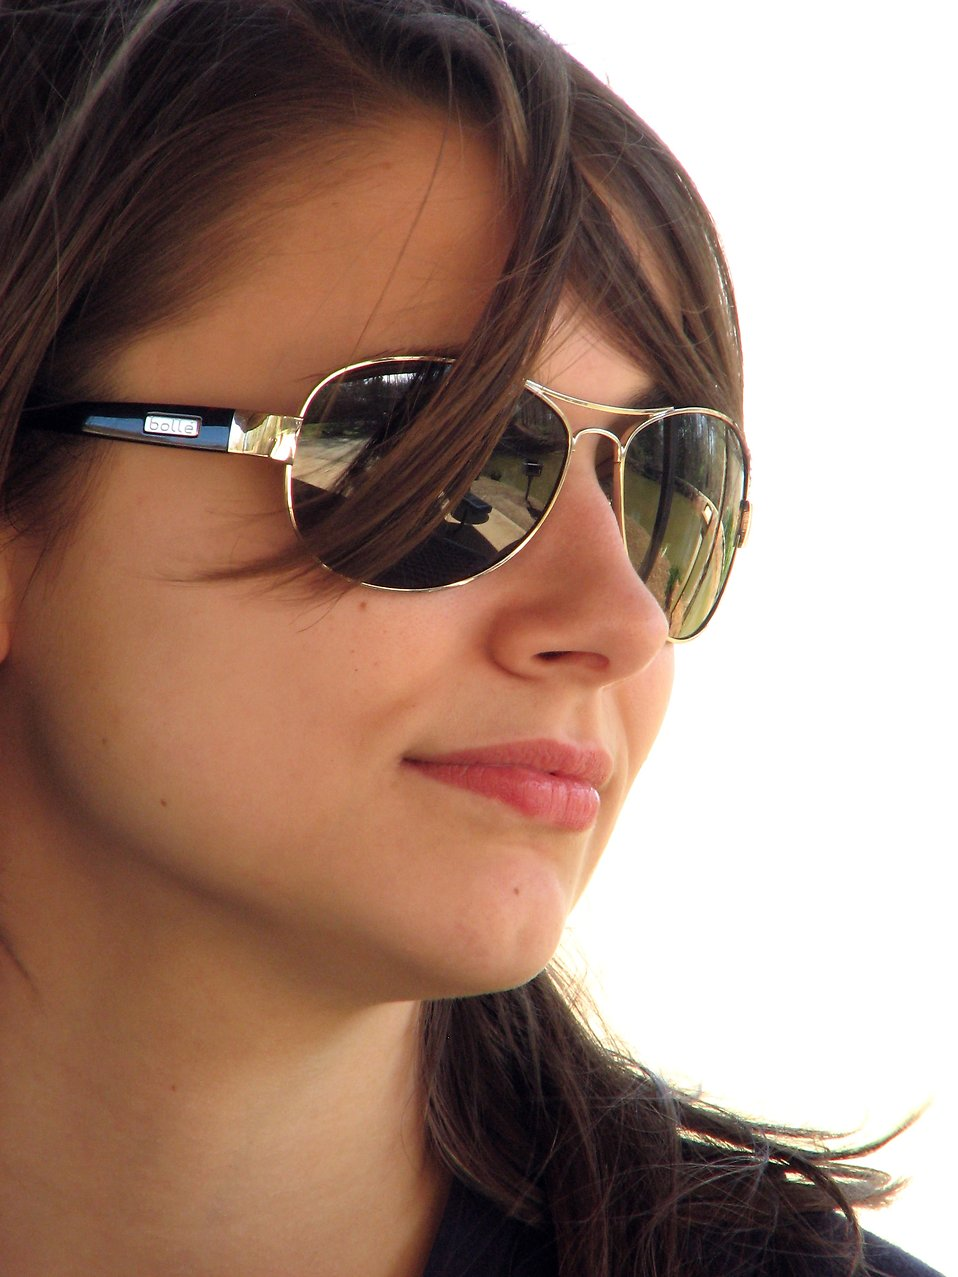 Close-up portrait of a beautiful girl wearing sunglasses : Free Stock Photo